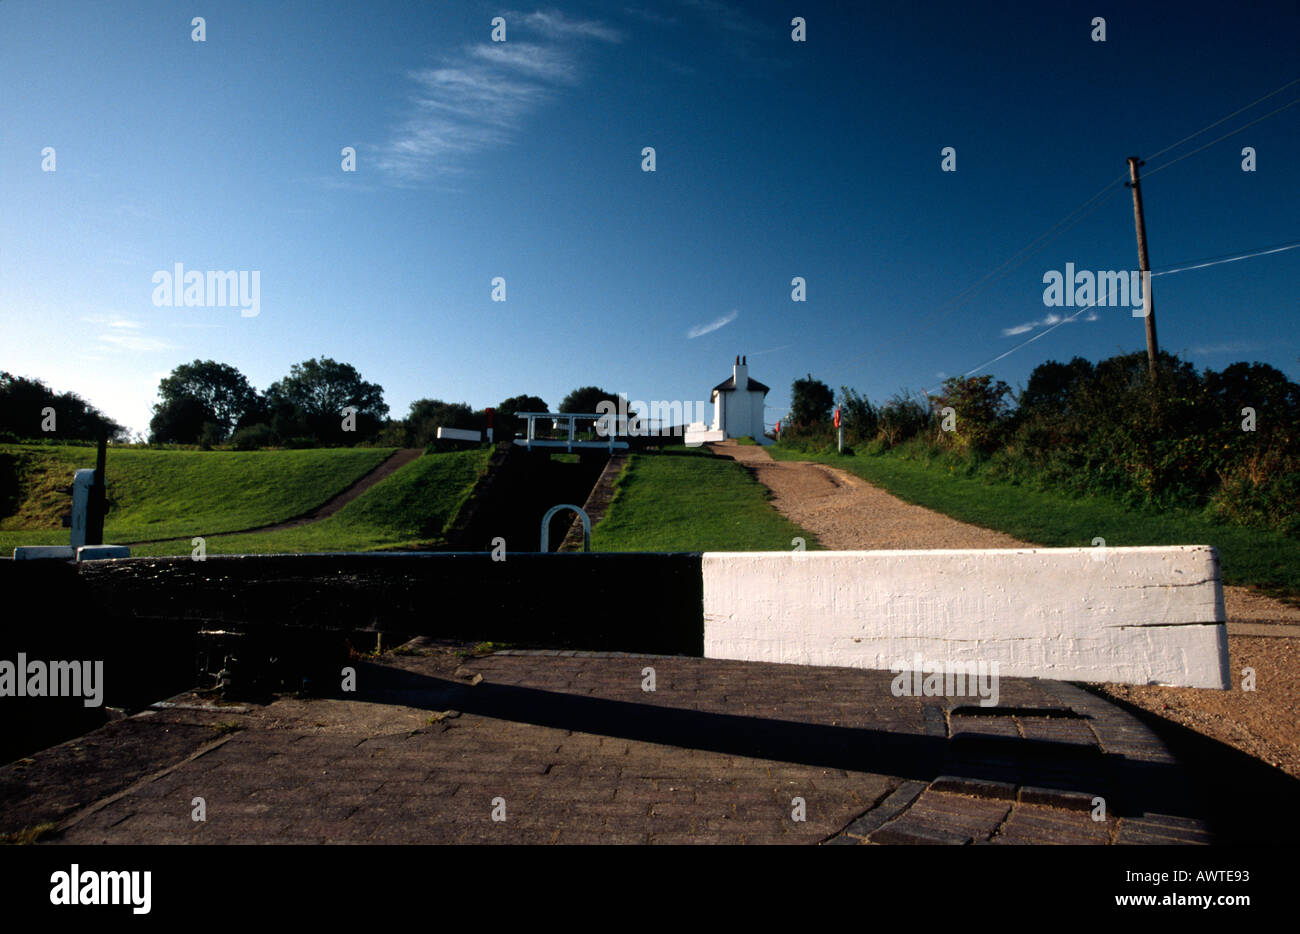 Foxton locks on the Grand Union Junction Canal - Stock Image